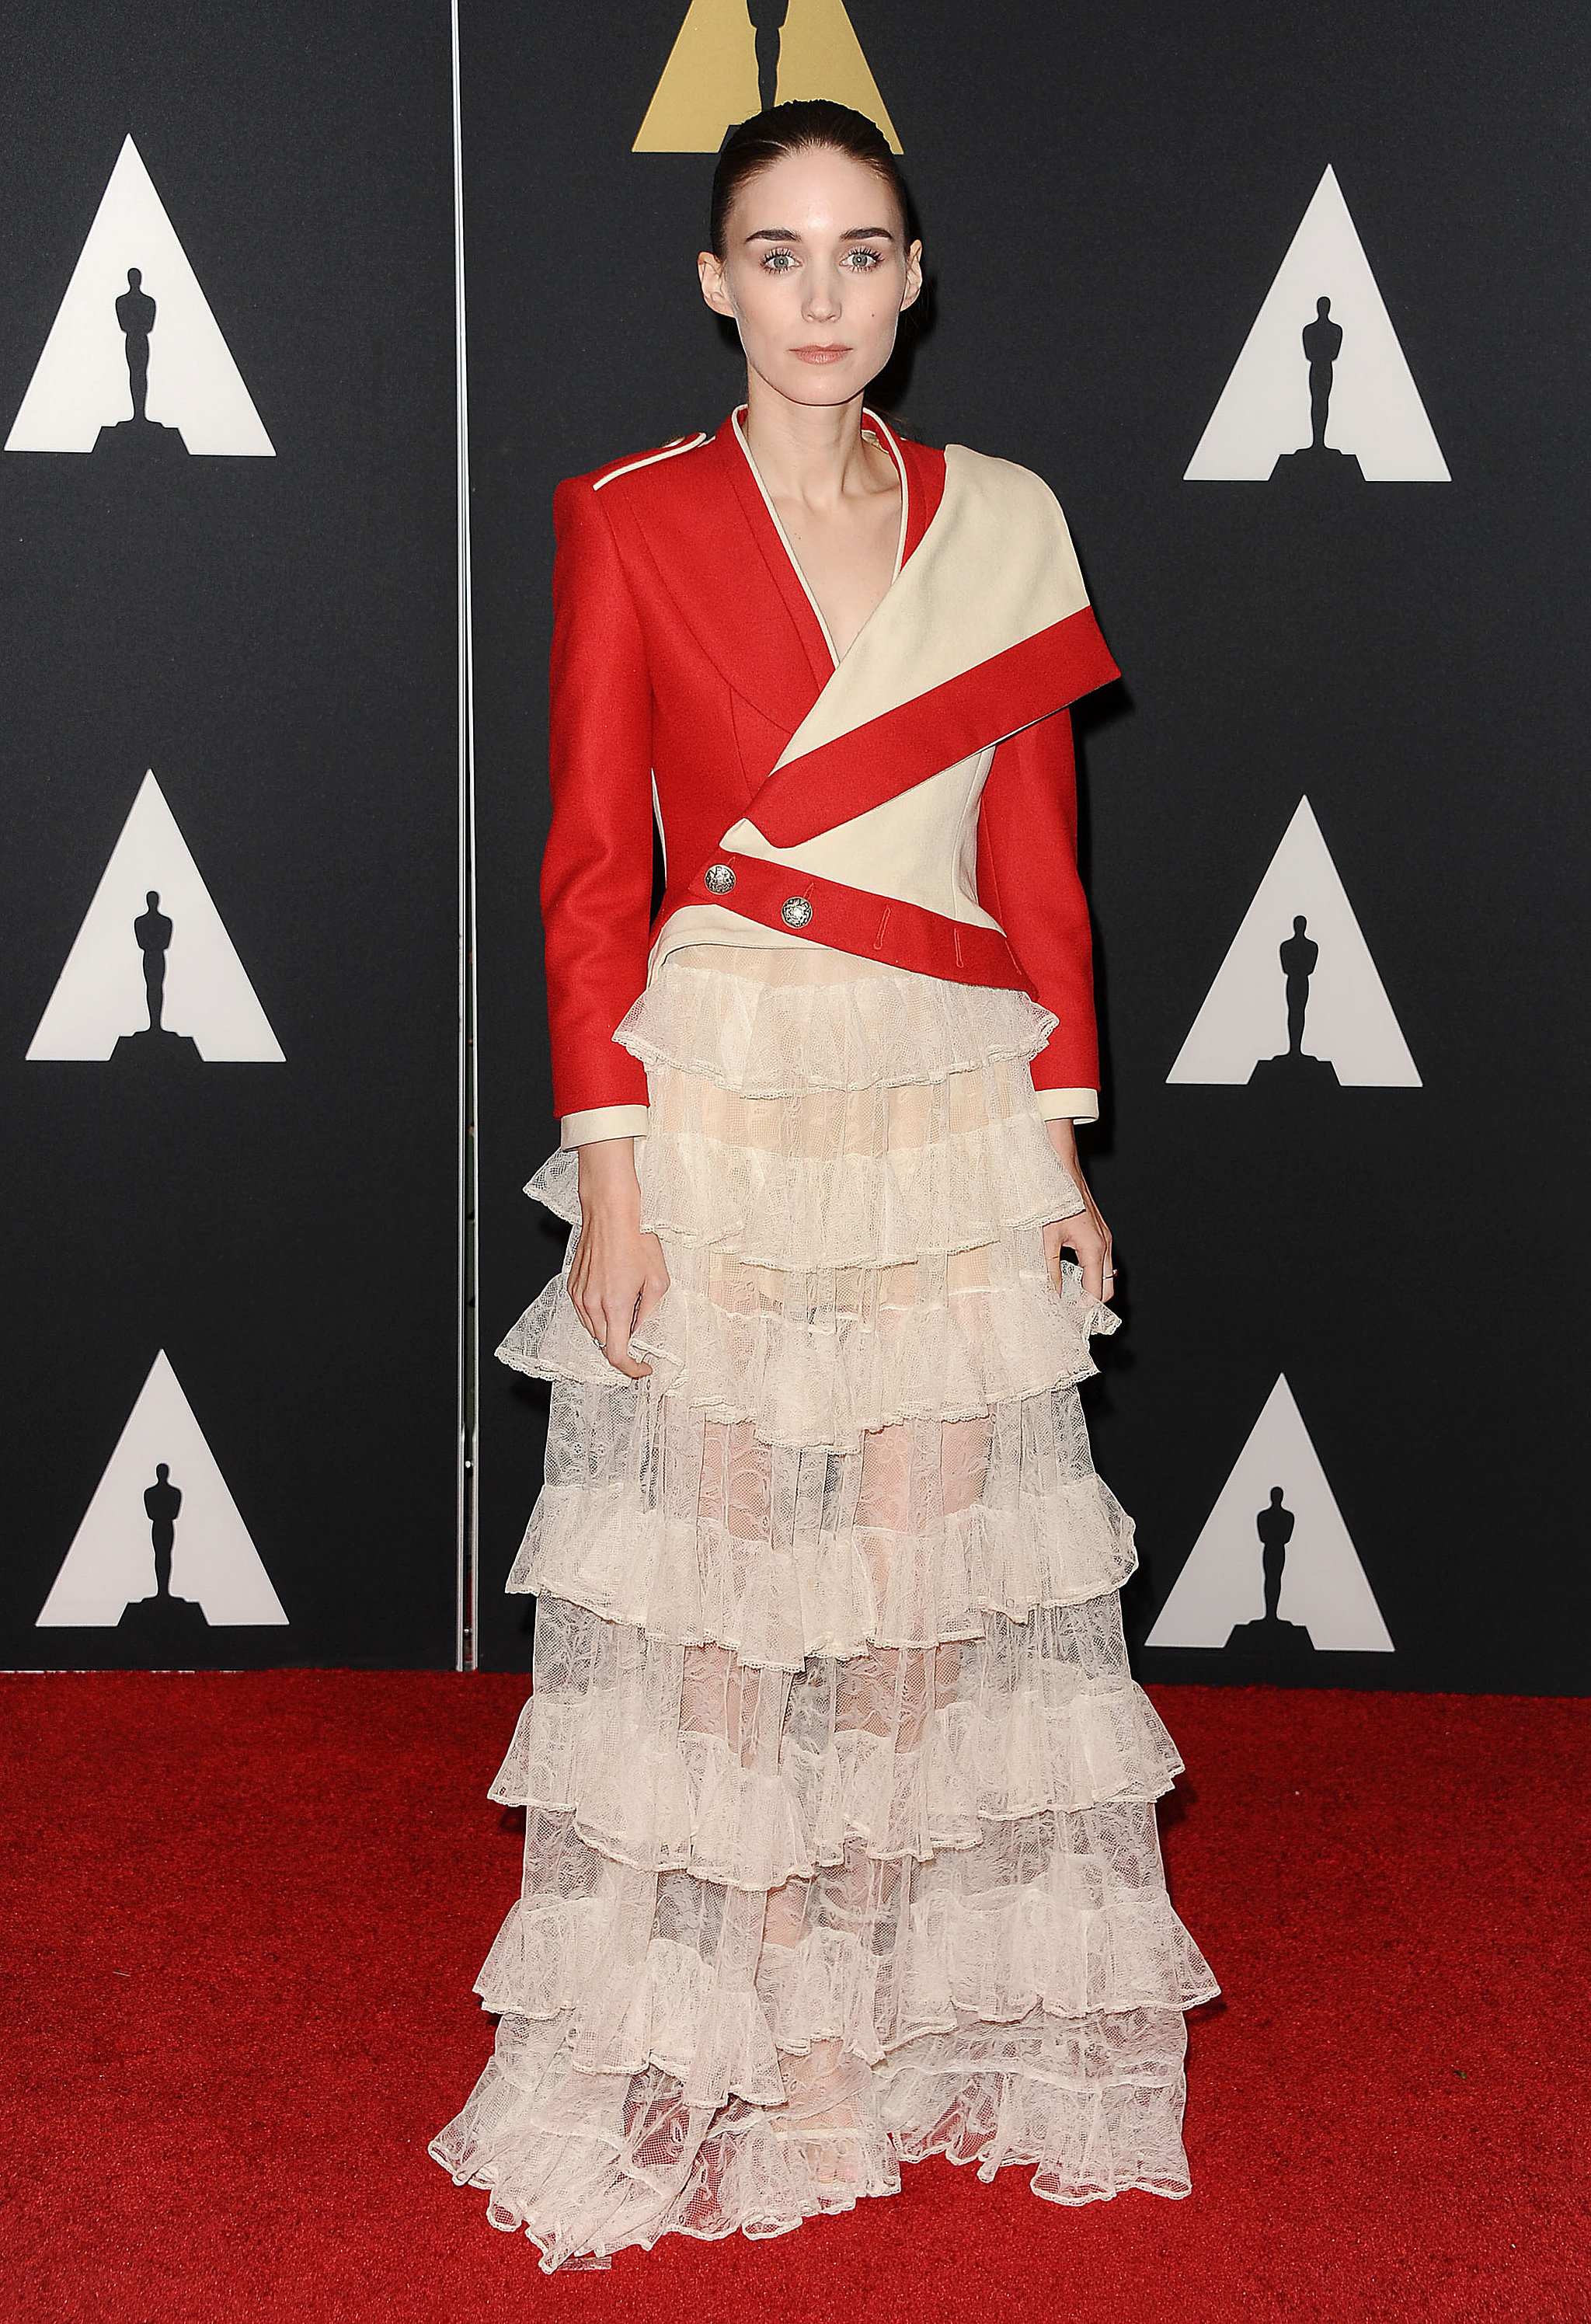 Rooney Mara Wearing Alexander McQueen at the 7th Annual Governors Awards